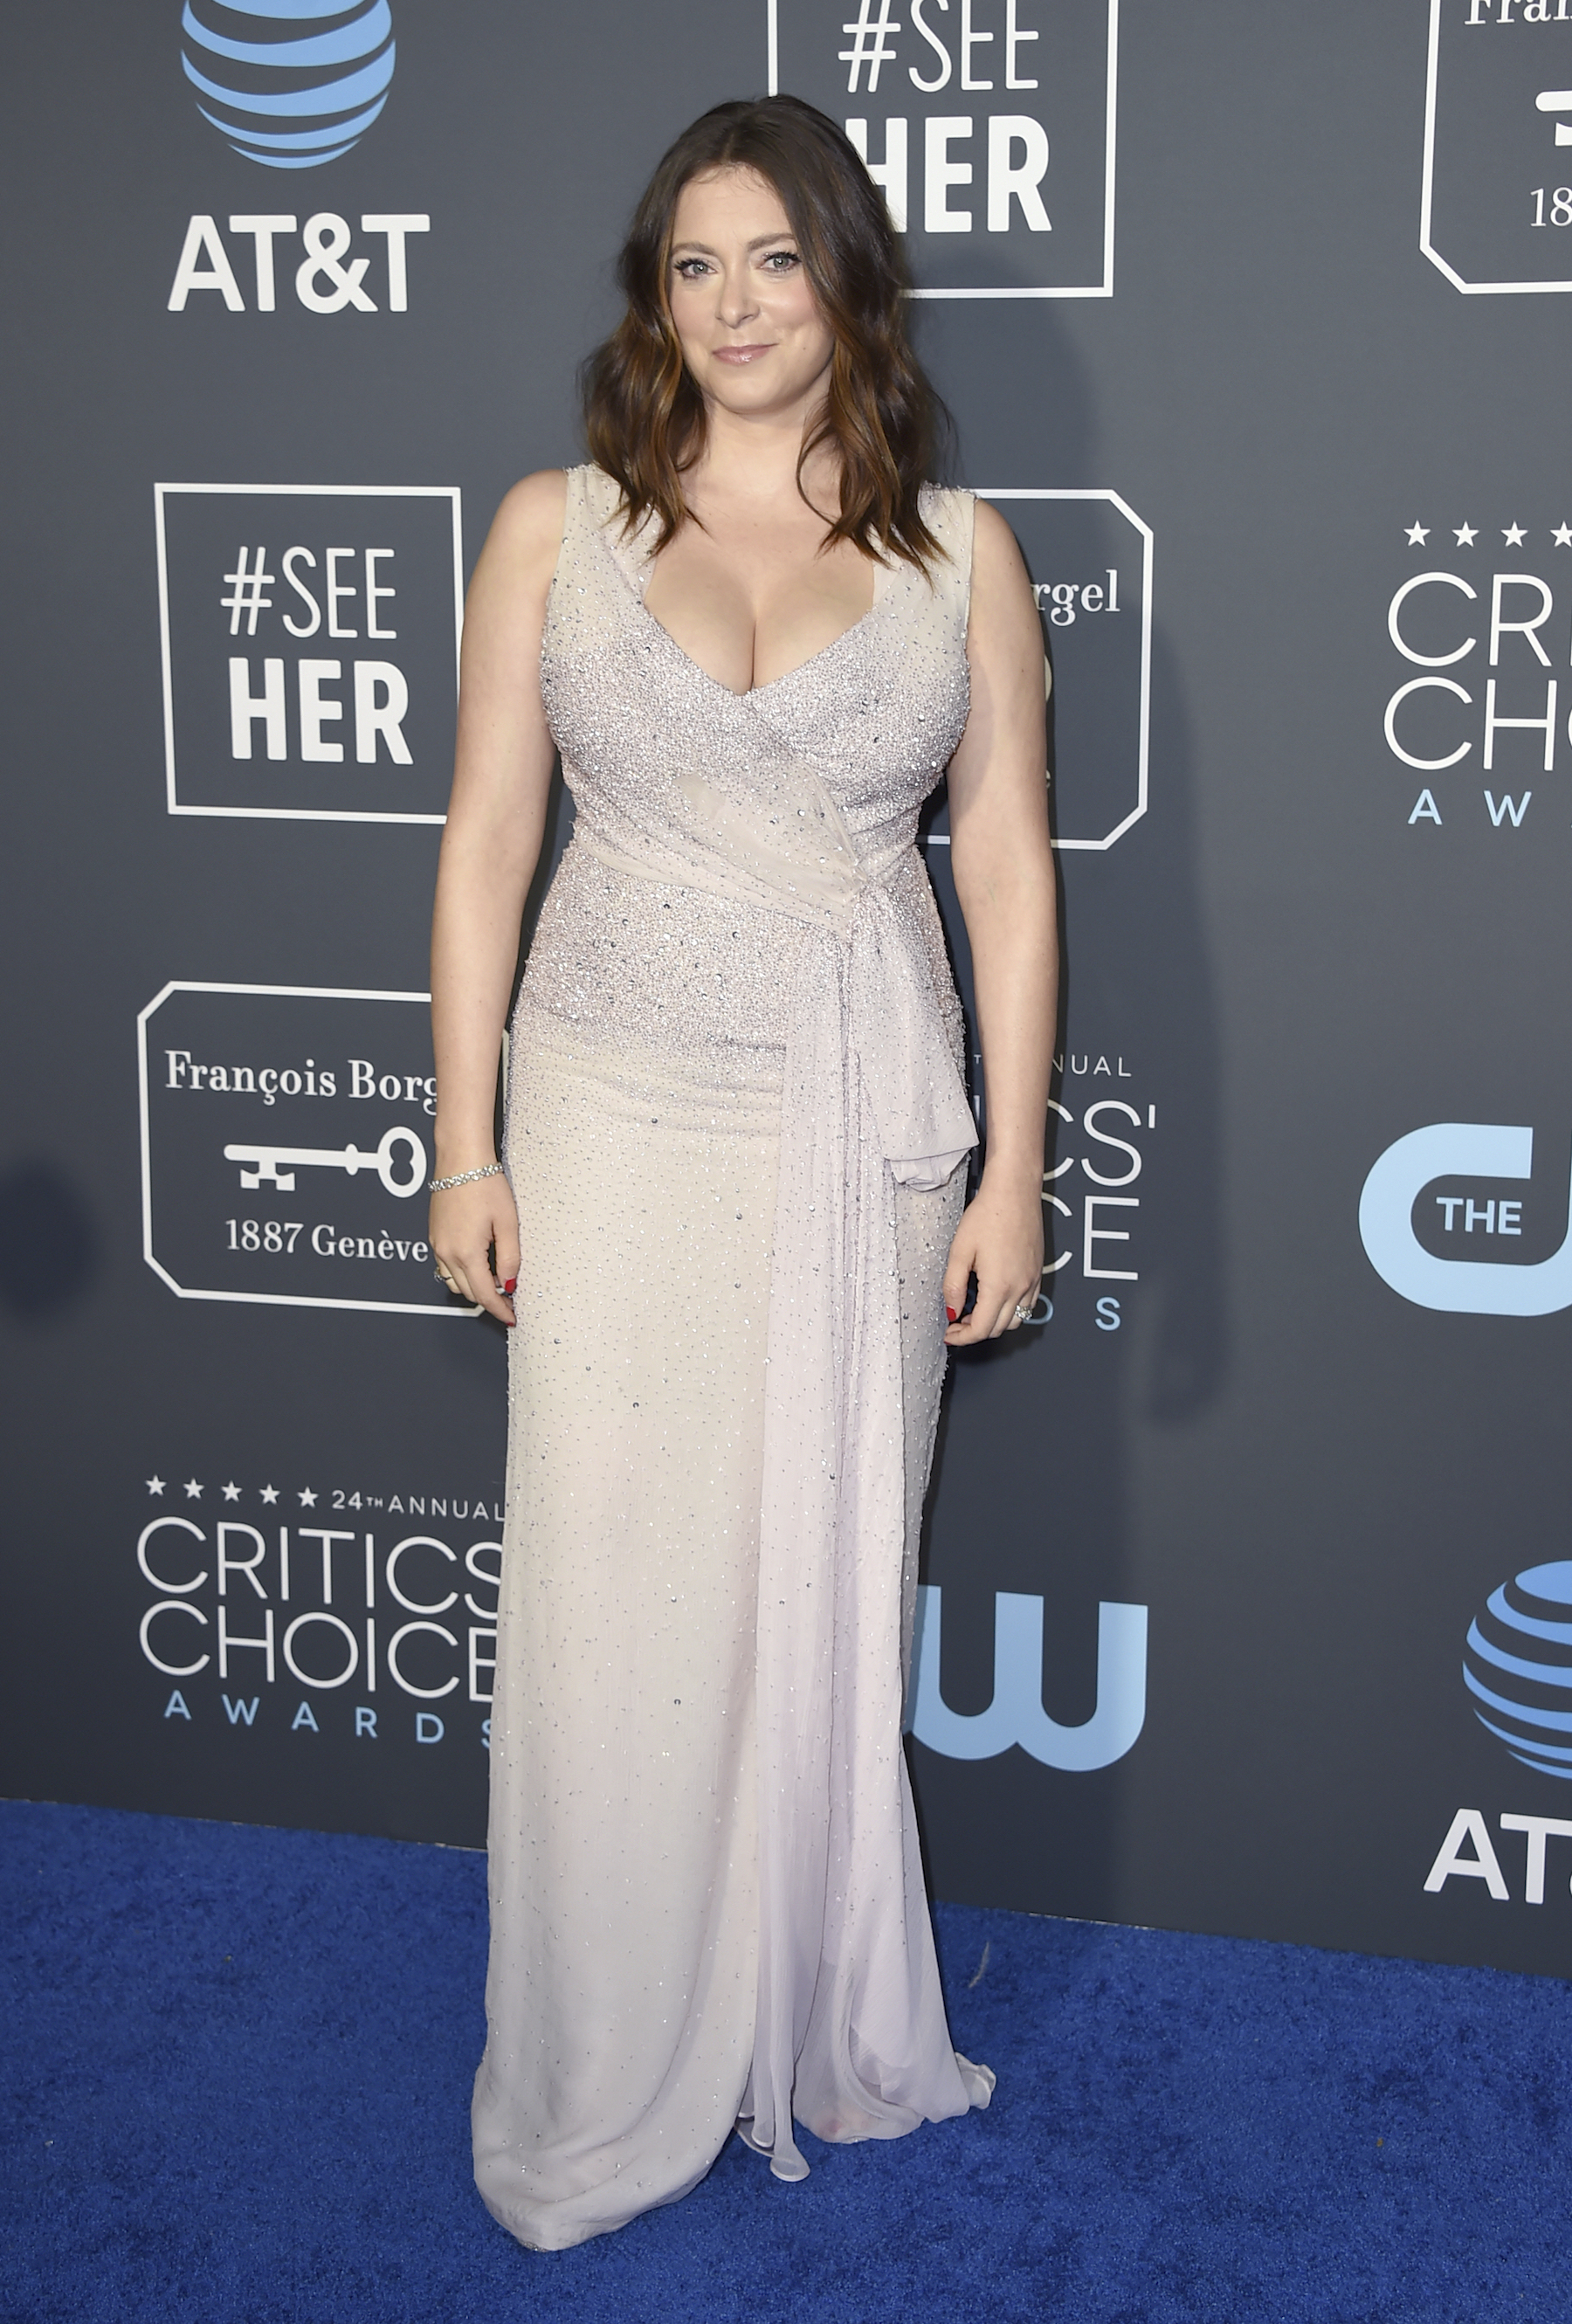 <div class='meta'><div class='origin-logo' data-origin='AP'></div><span class='caption-text' data-credit='Jordan Strauss/Invision/AP'>Rachel Bloom arrives at the 24th annual Critics' Choice Awards on Sunday, Jan. 13, 2019, at the Barker Hangar in Santa Monica, Calif.</span></div>